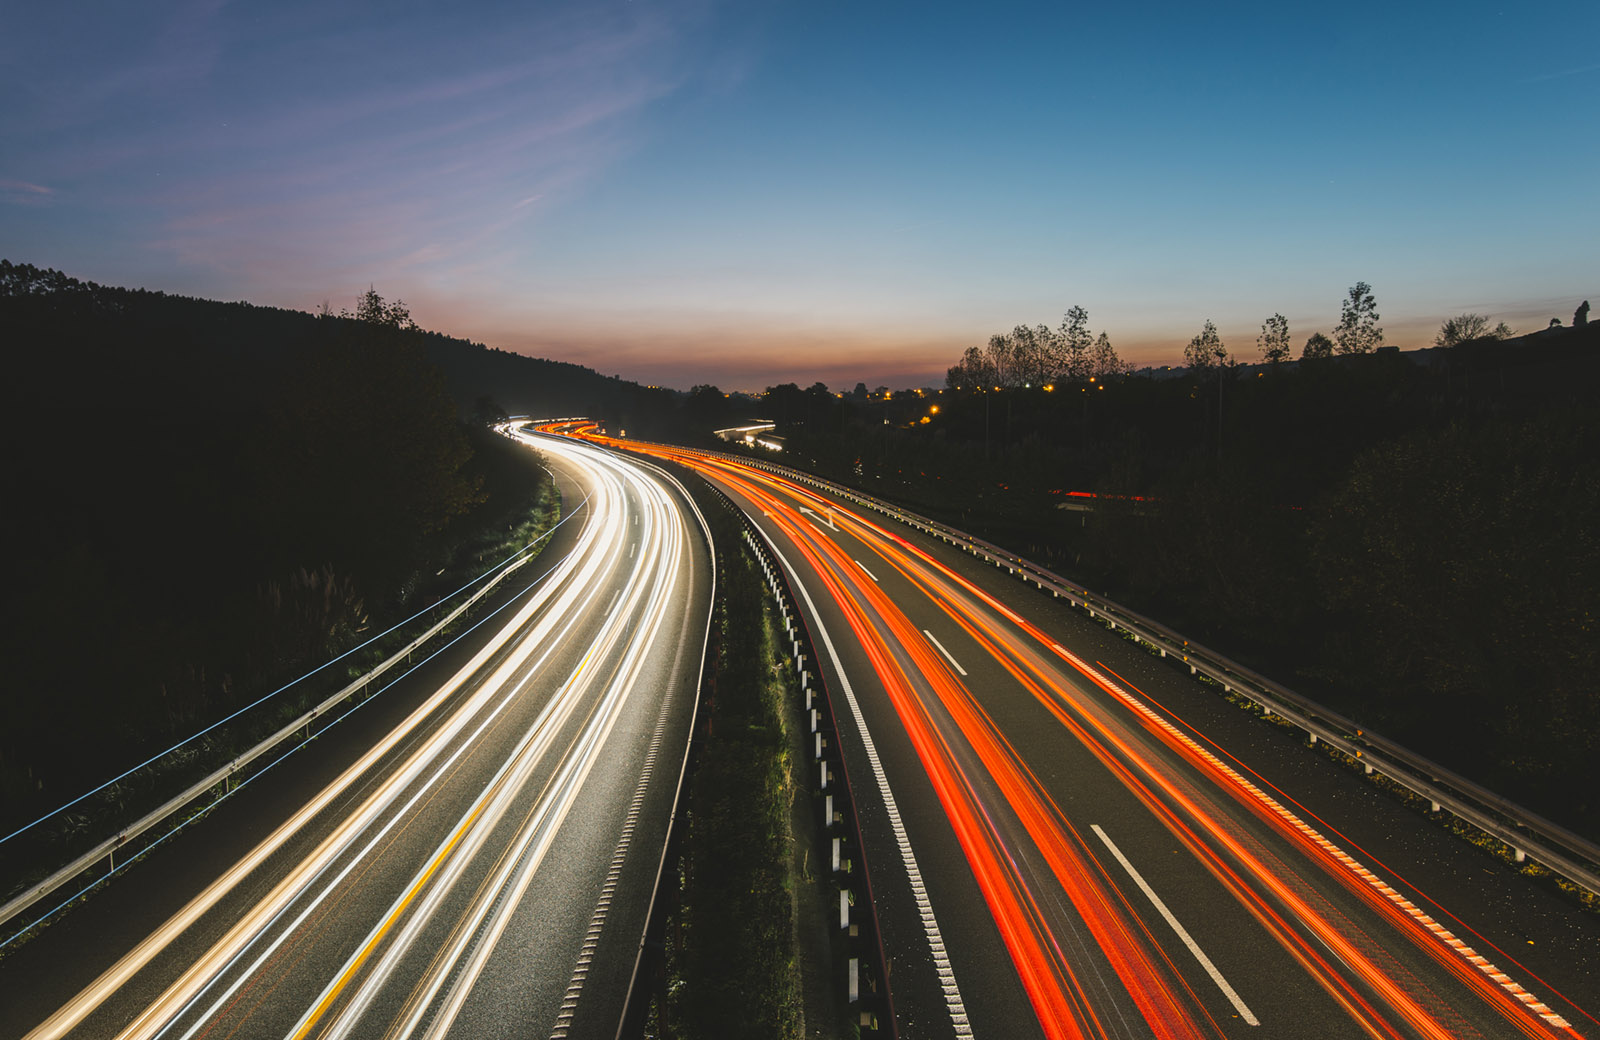 Abstract image of a highway at night